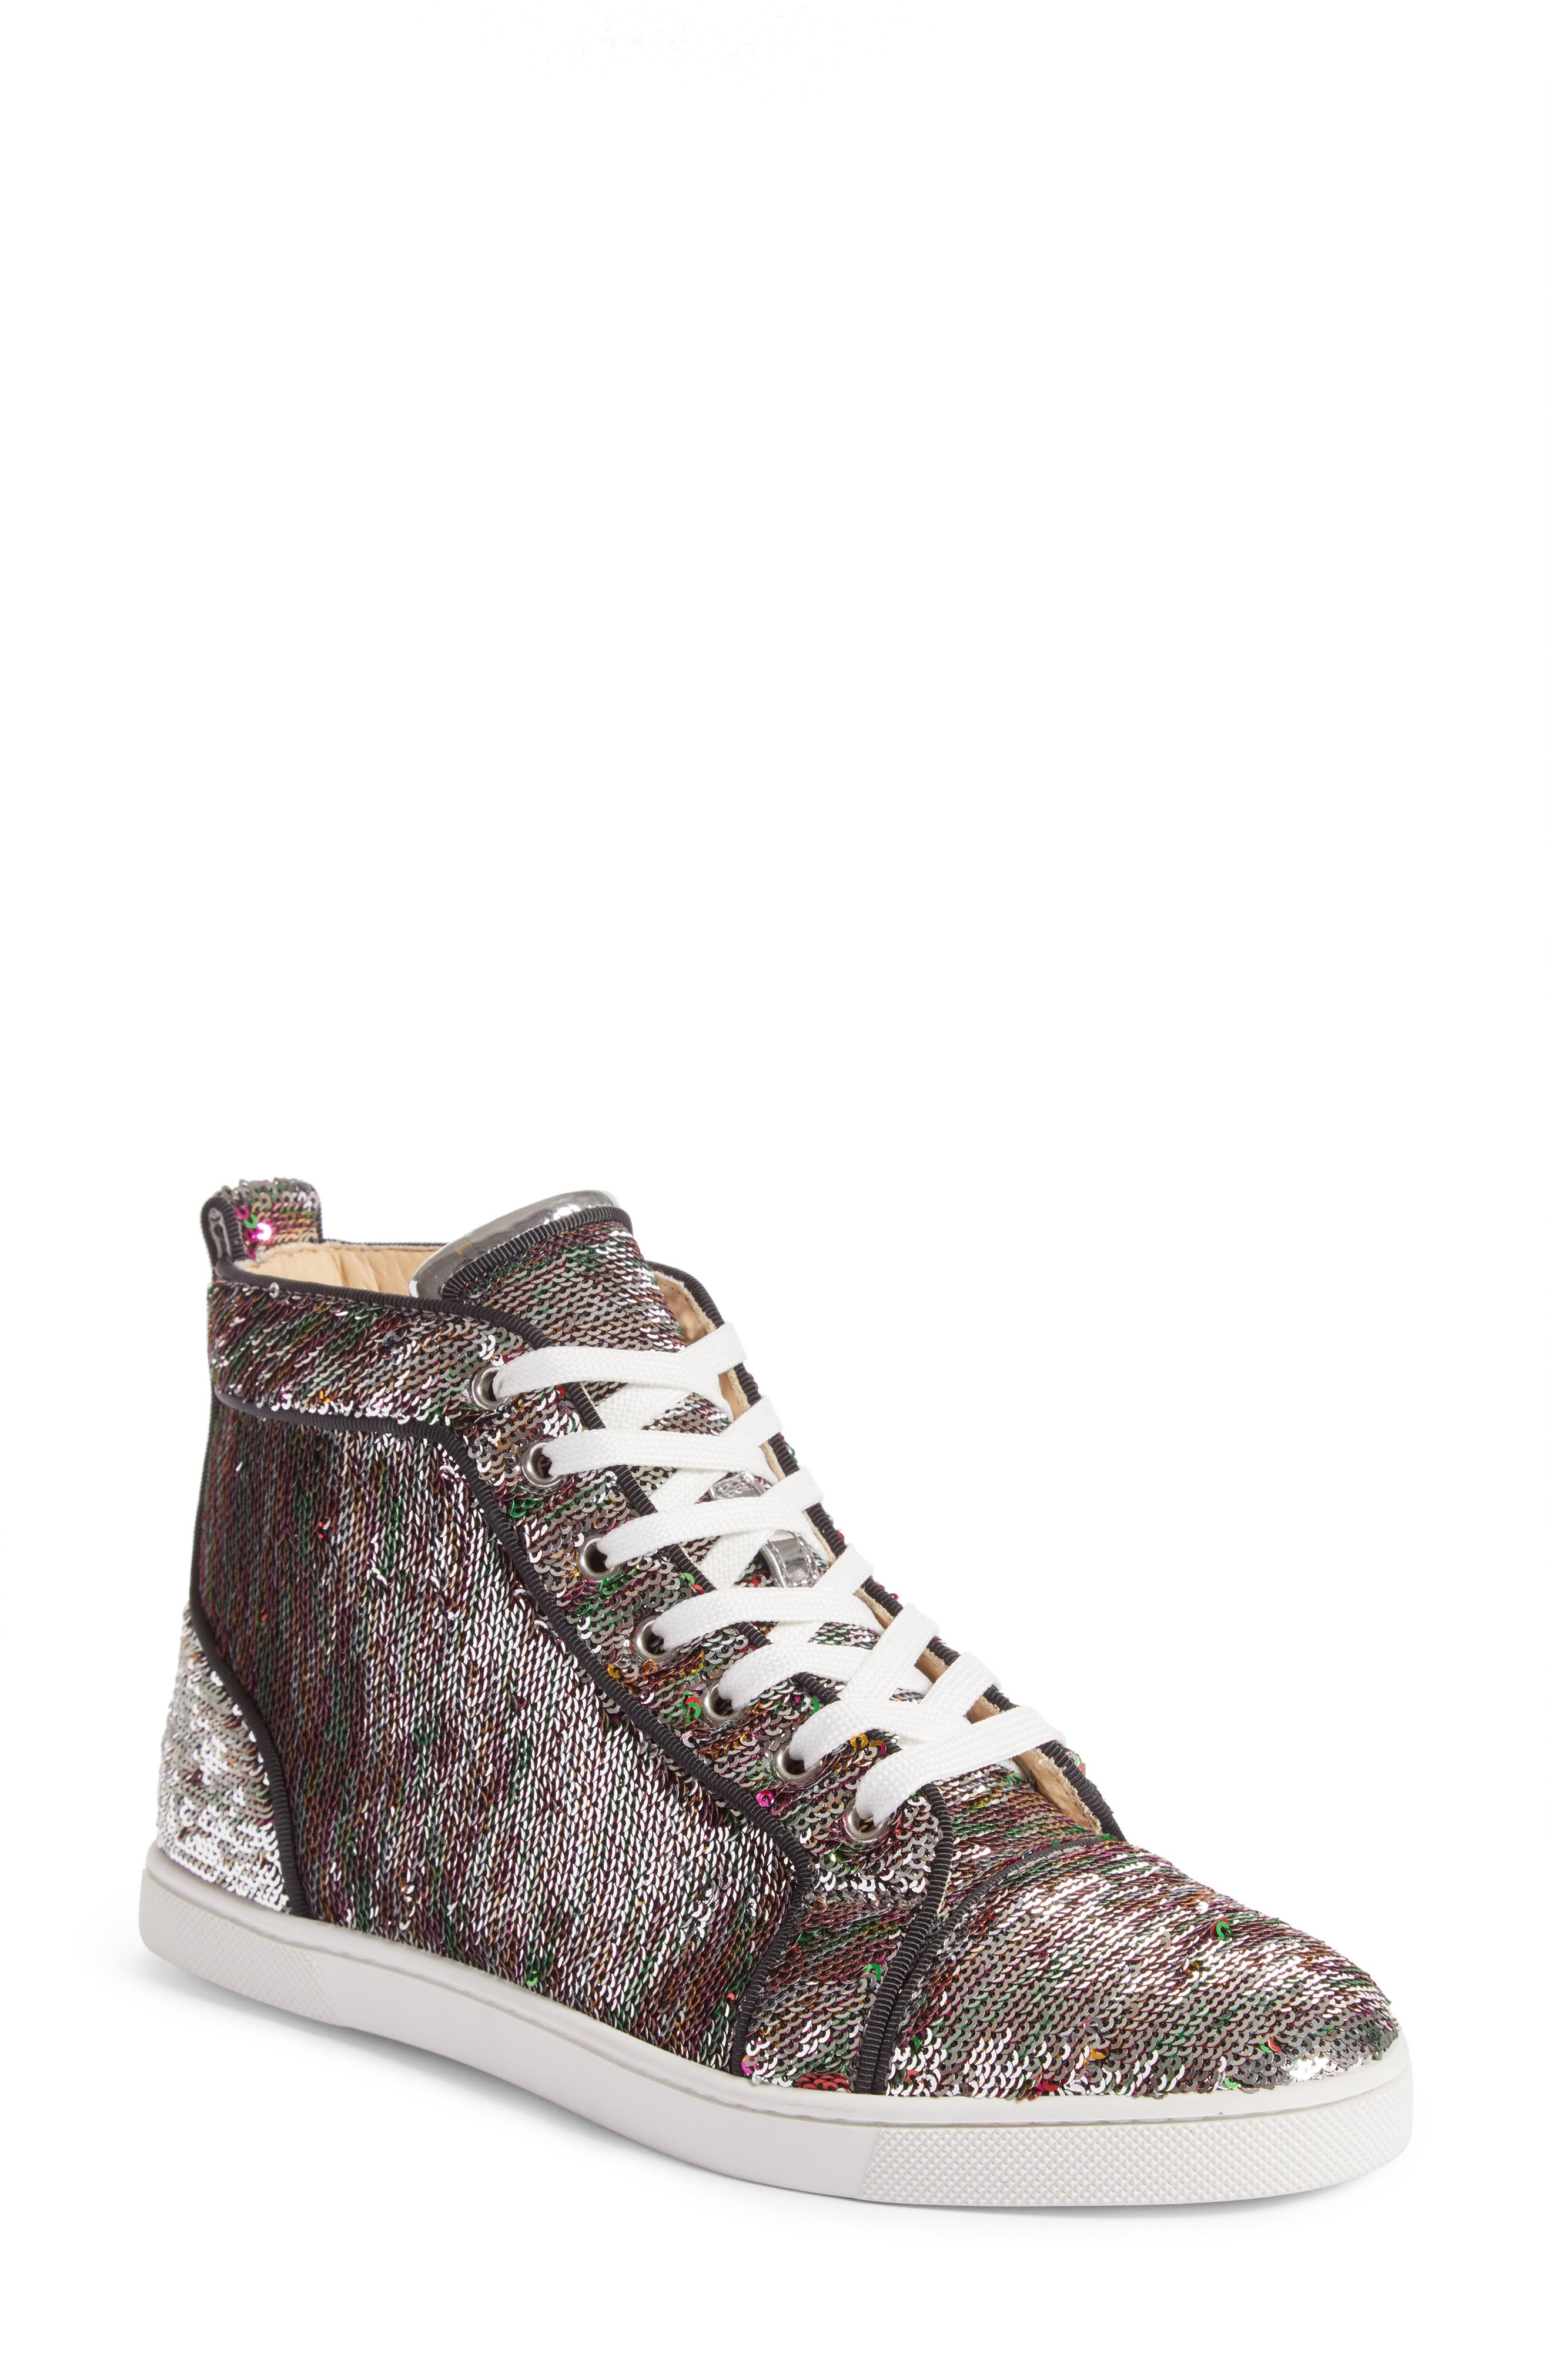 Bip Bip High Top Sneaker,                         Main,                         color,